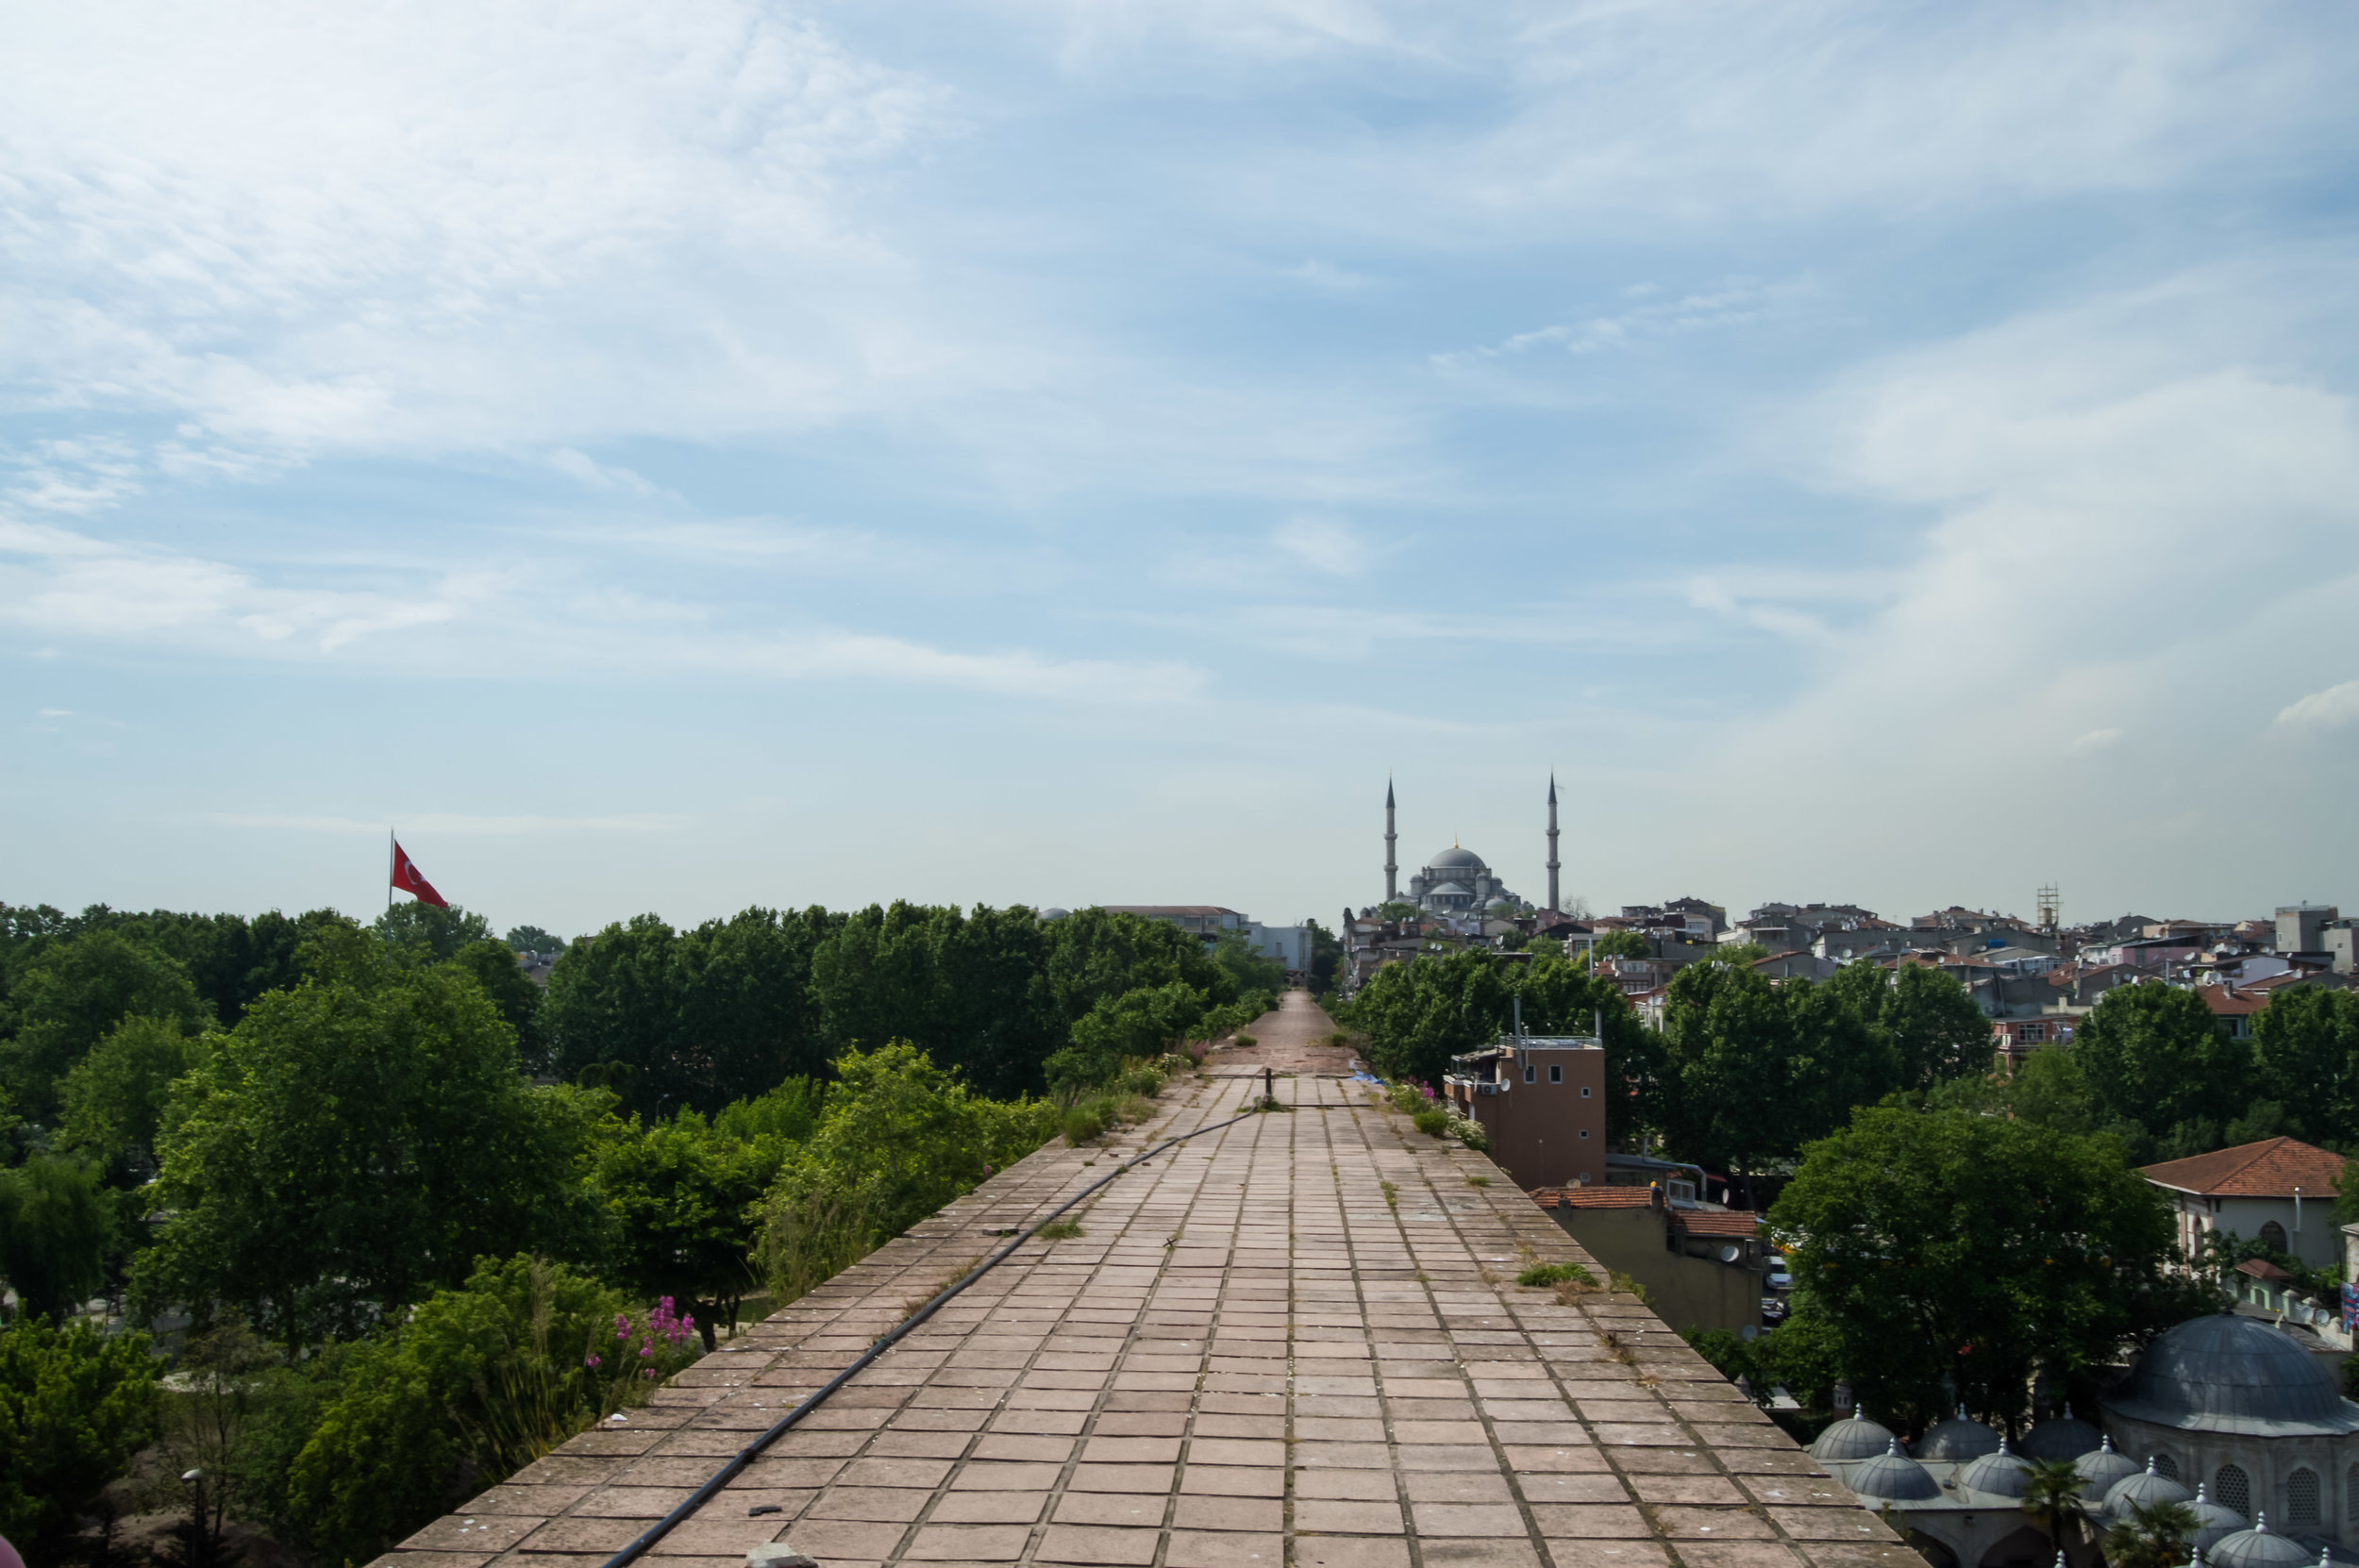 View from Valens Aqueduct Rowhomes Mosques Skyline Blue Sky Muslim Ottoman Empire Architecture Istanbul Turkey